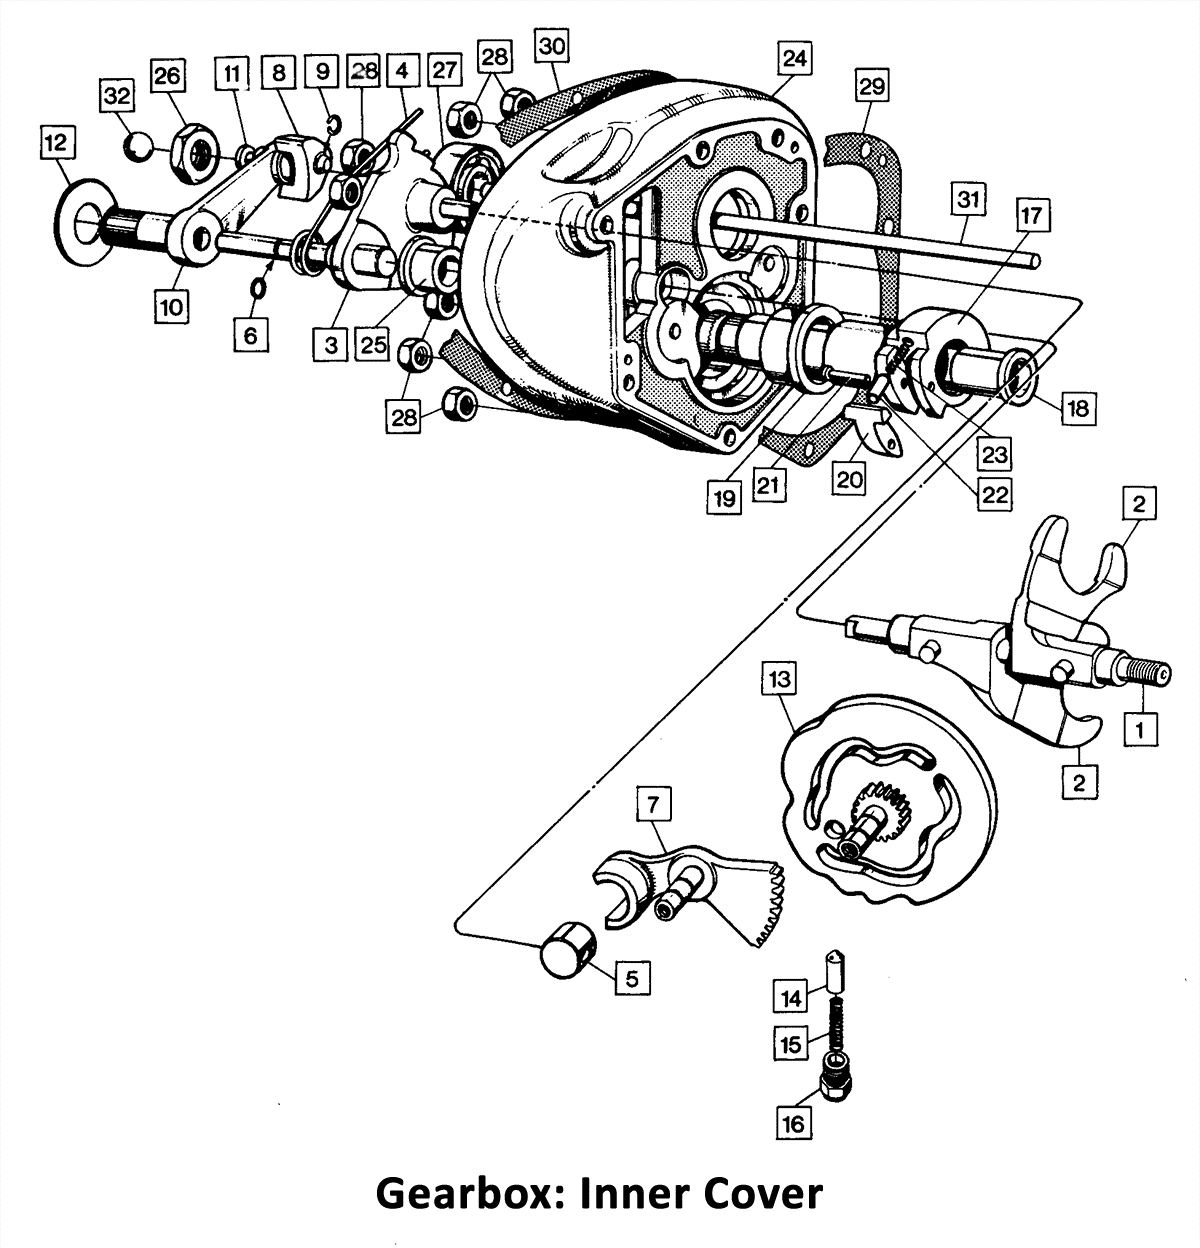 1973-74 Norton Commando 750 & 850 Gearbox: Inner Cover